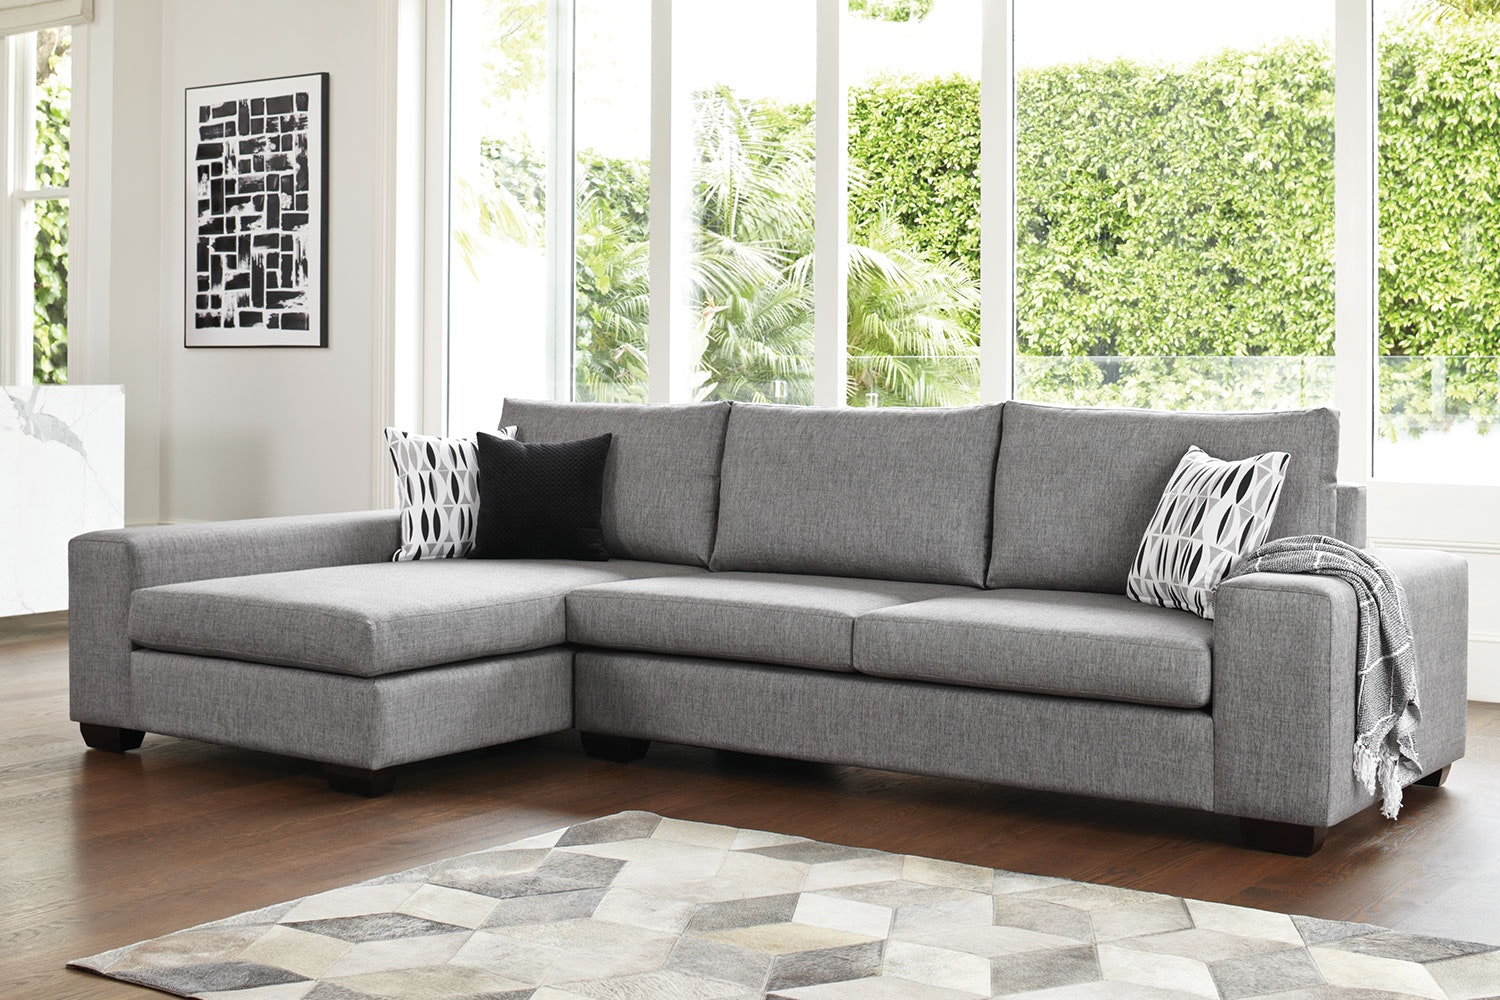 Kingdom 4 Seater Fabric Sofa with Chaise by Furniture Haven